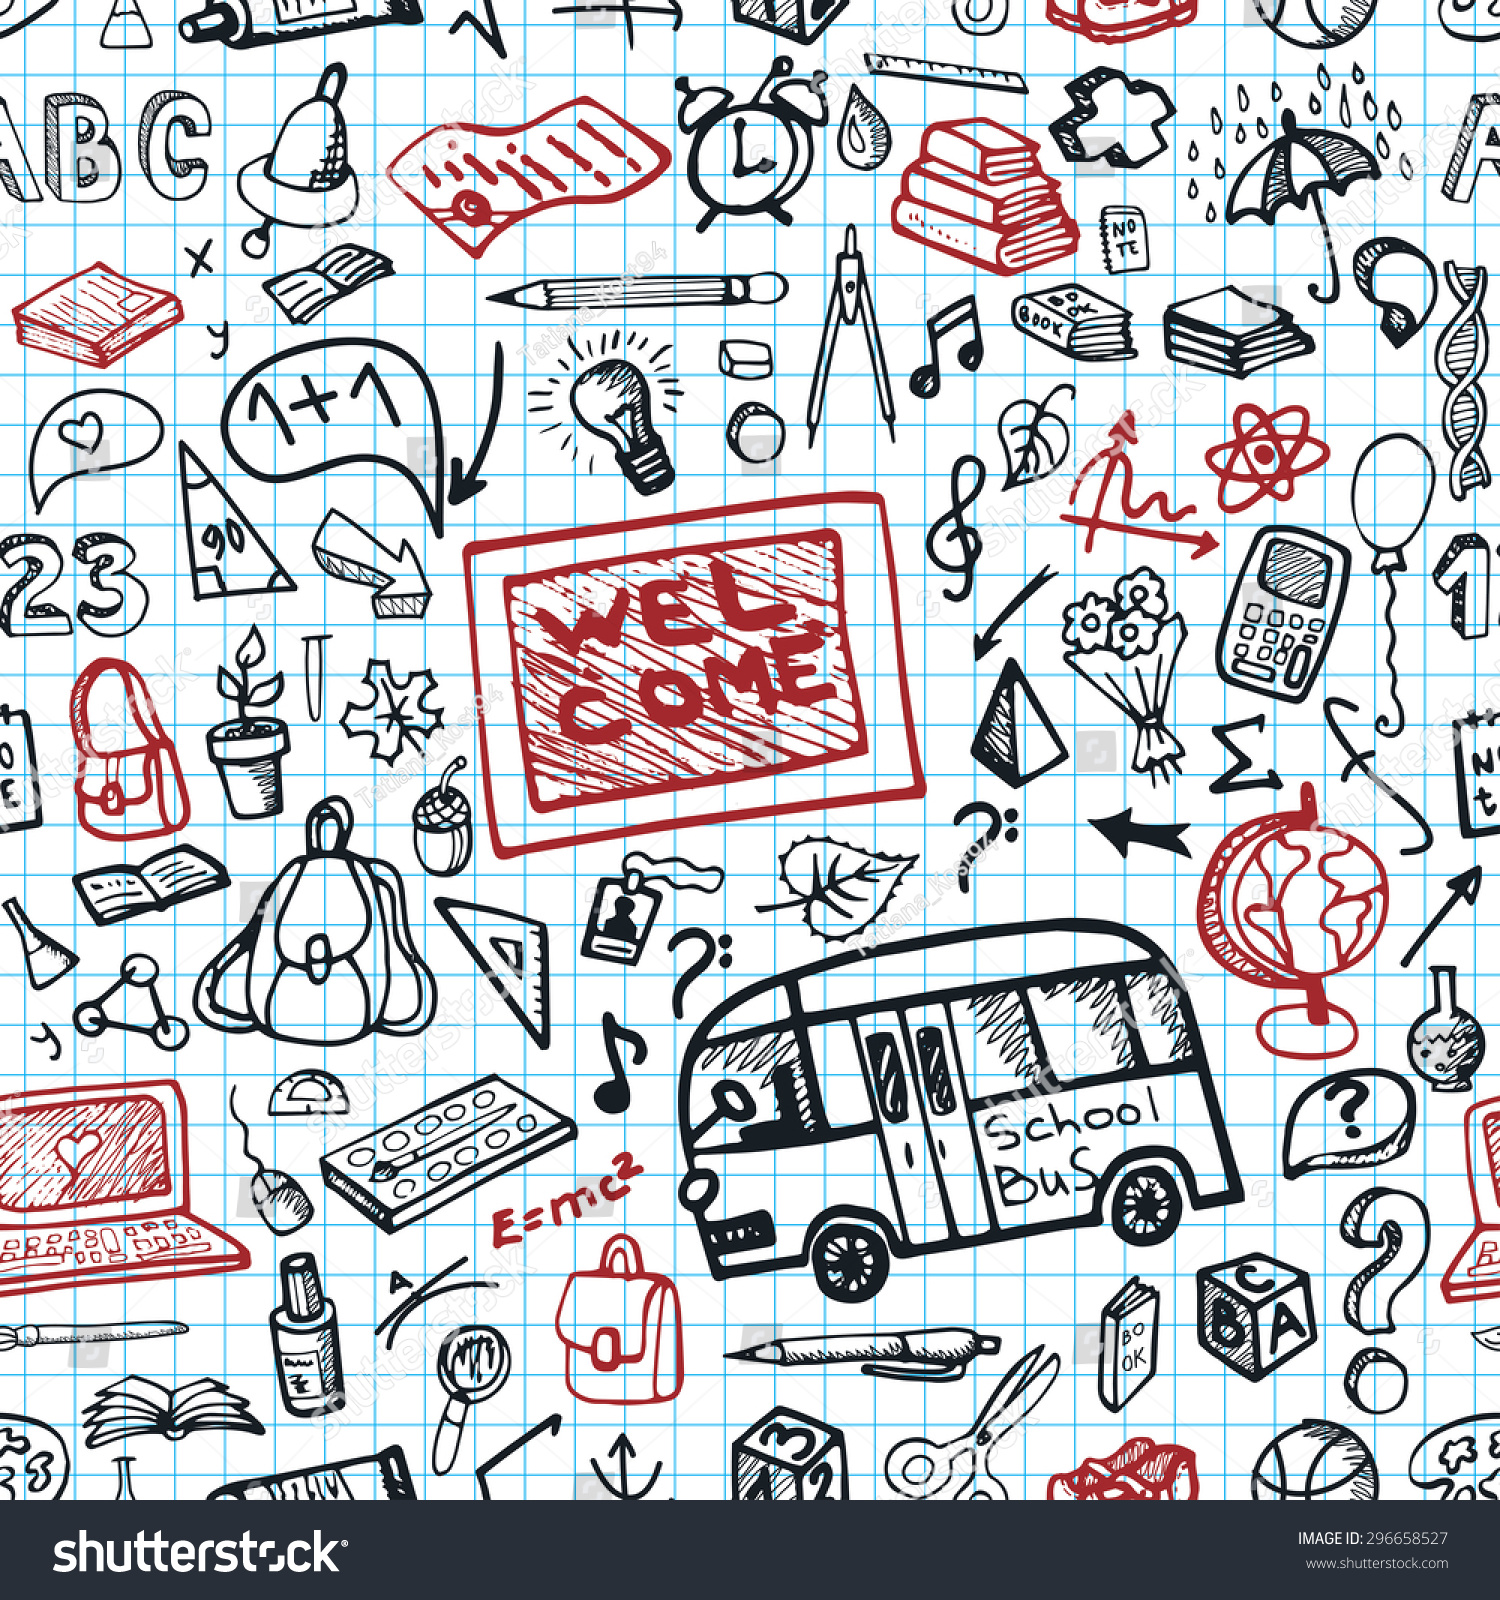 Back To School Doodles Supplies Seamless Pattern.Sketchy